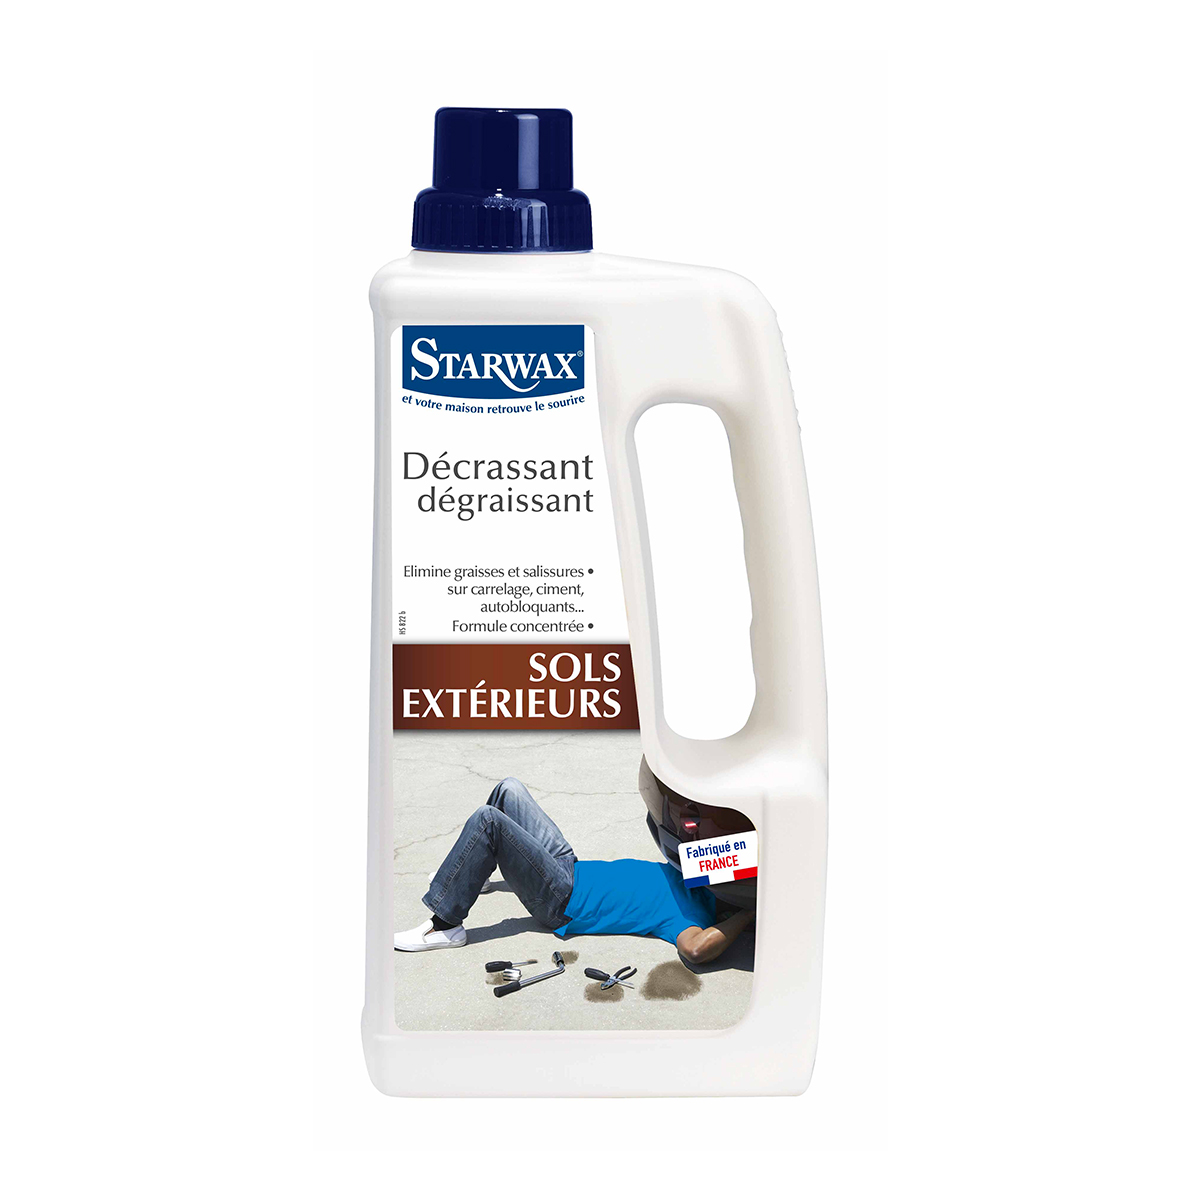 Patio cleaner - Starwax